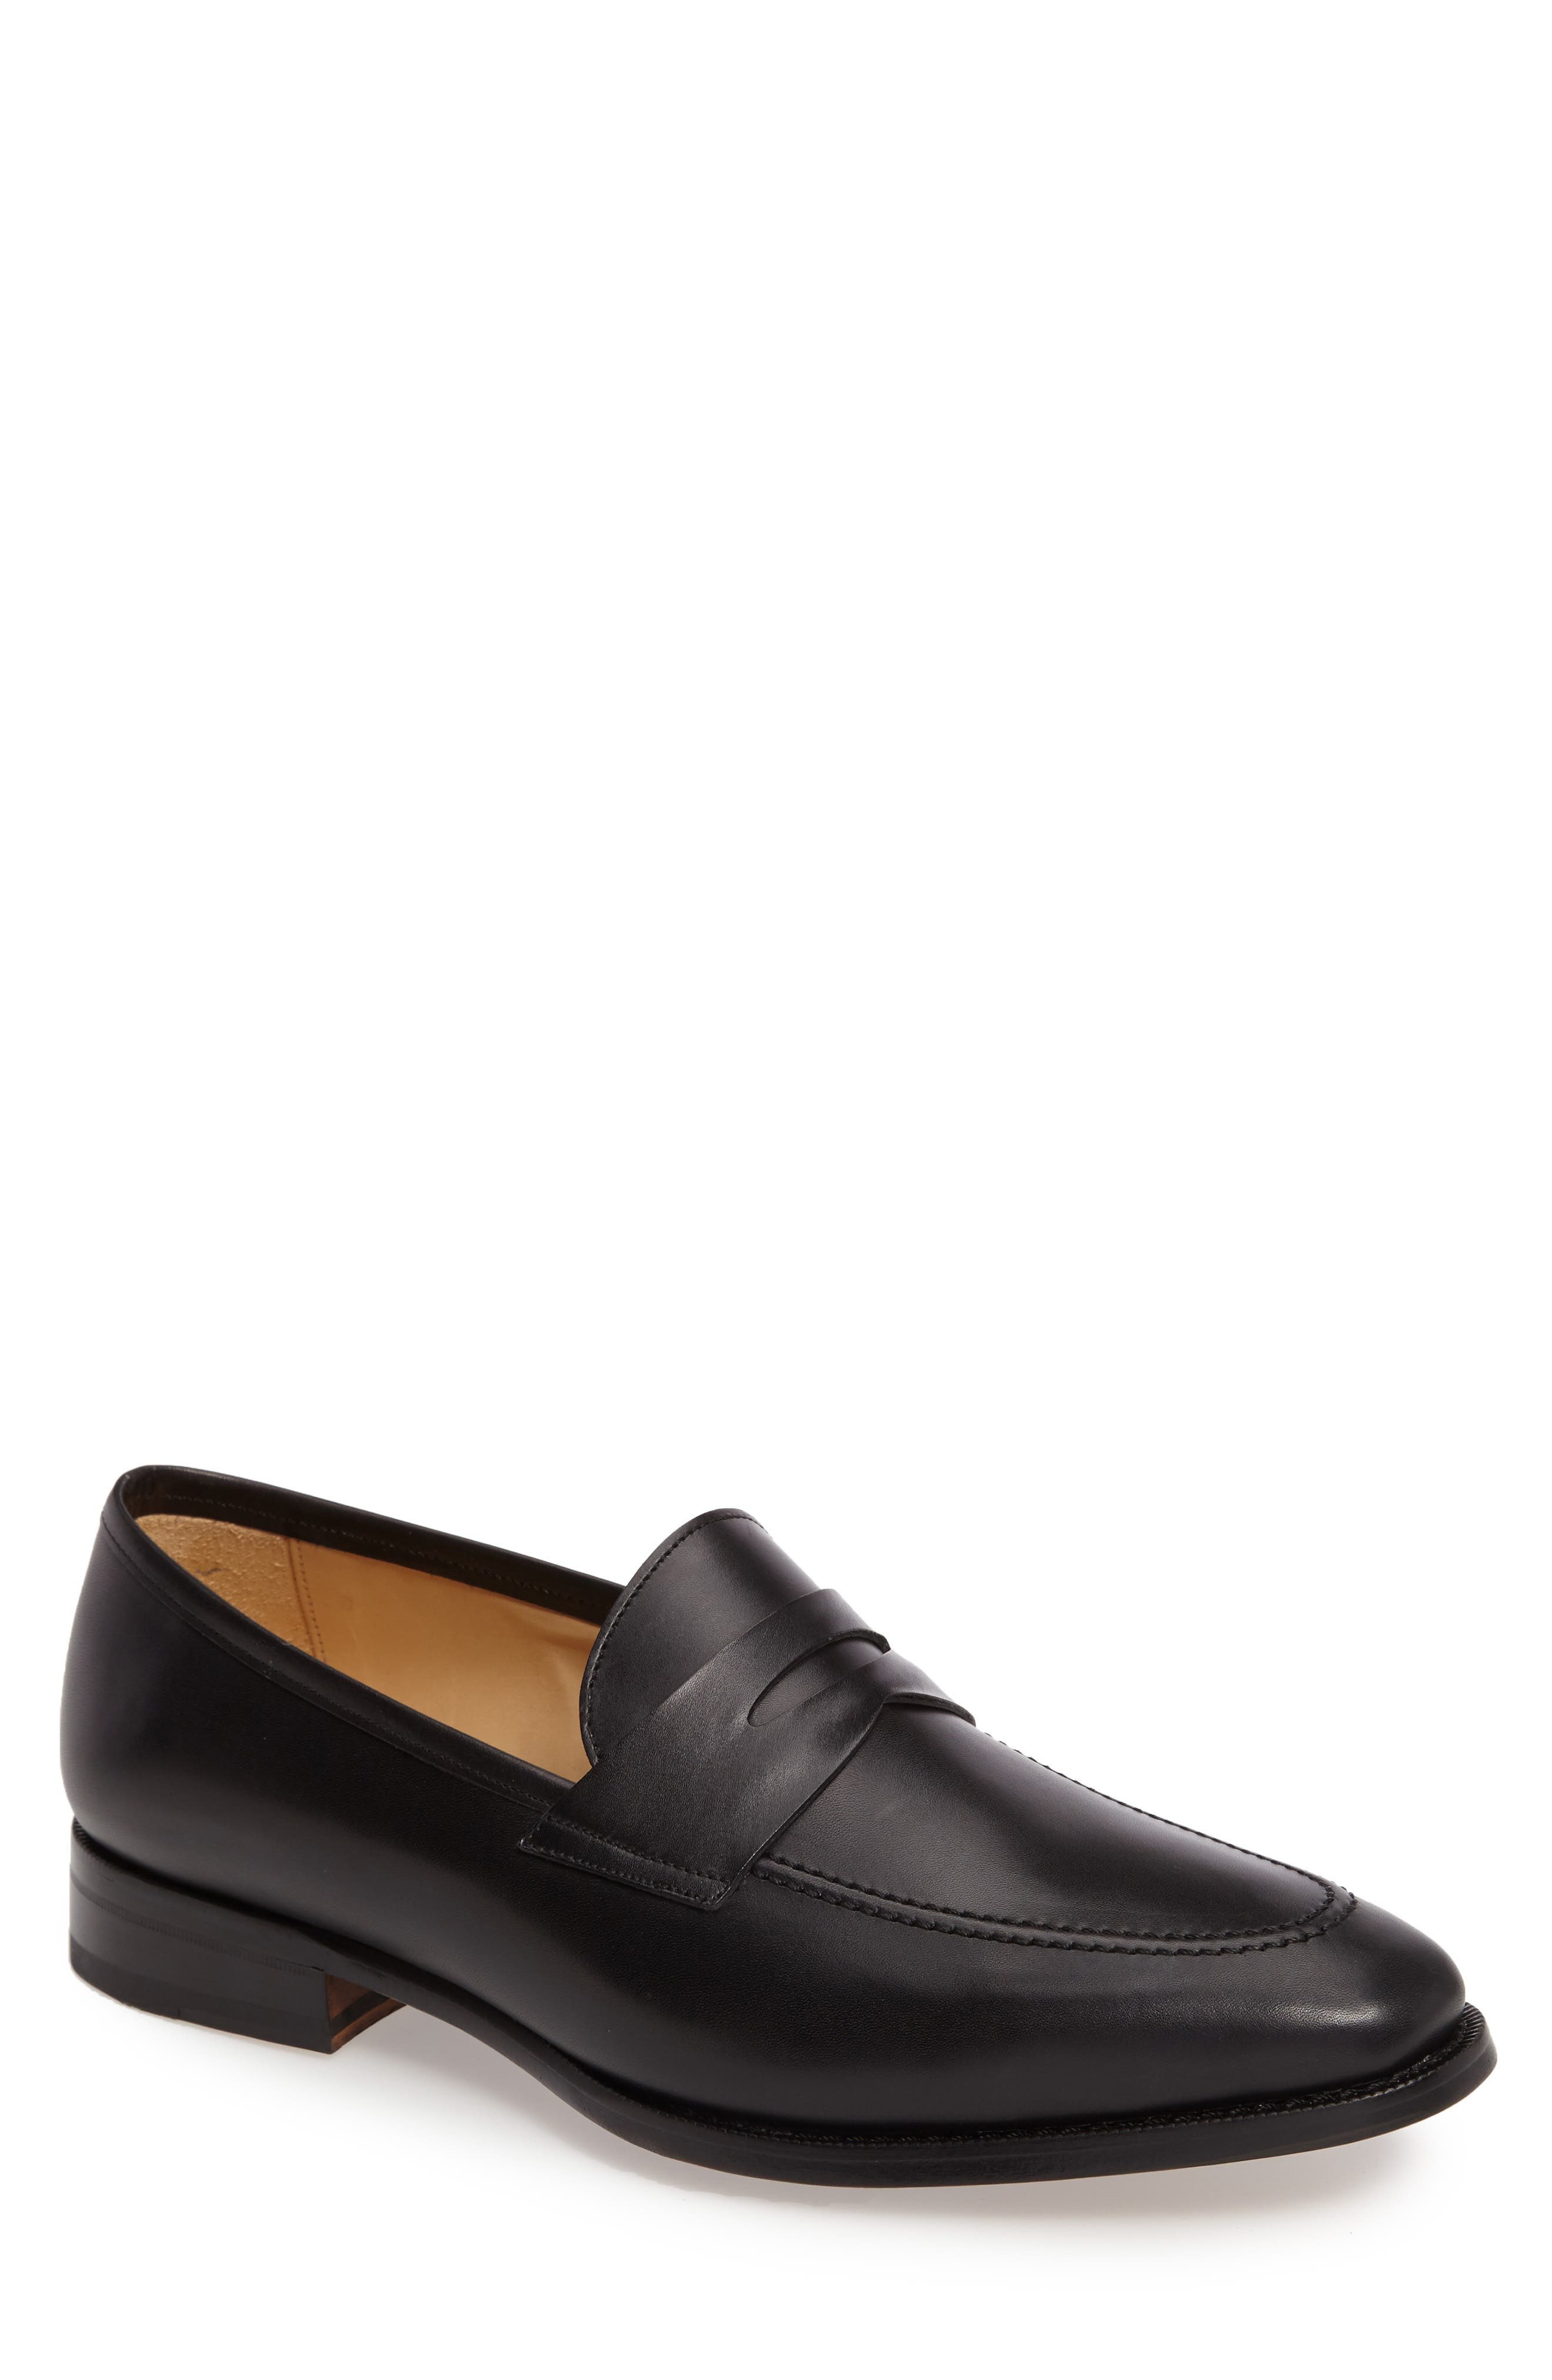 Abe Penny Loafer,                             Main thumbnail 1, color,                             BLACK LEATHER